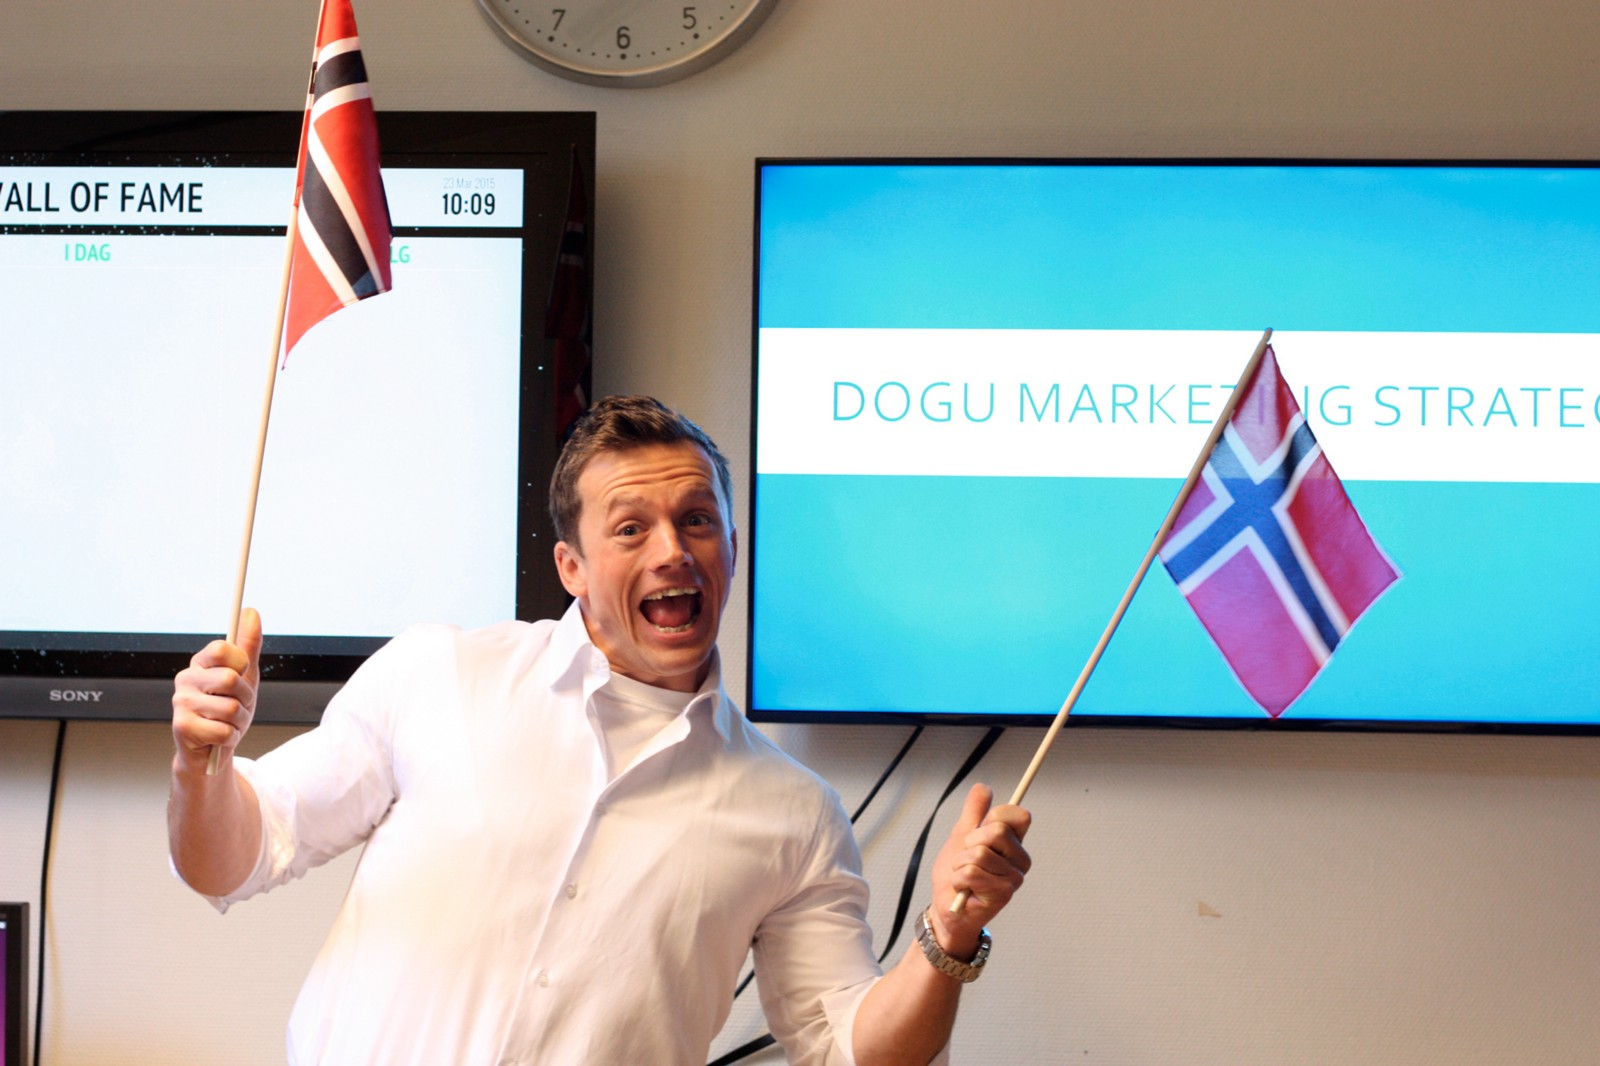 Beginning my Norwegian Adventure as Head of Marketing at Dogu